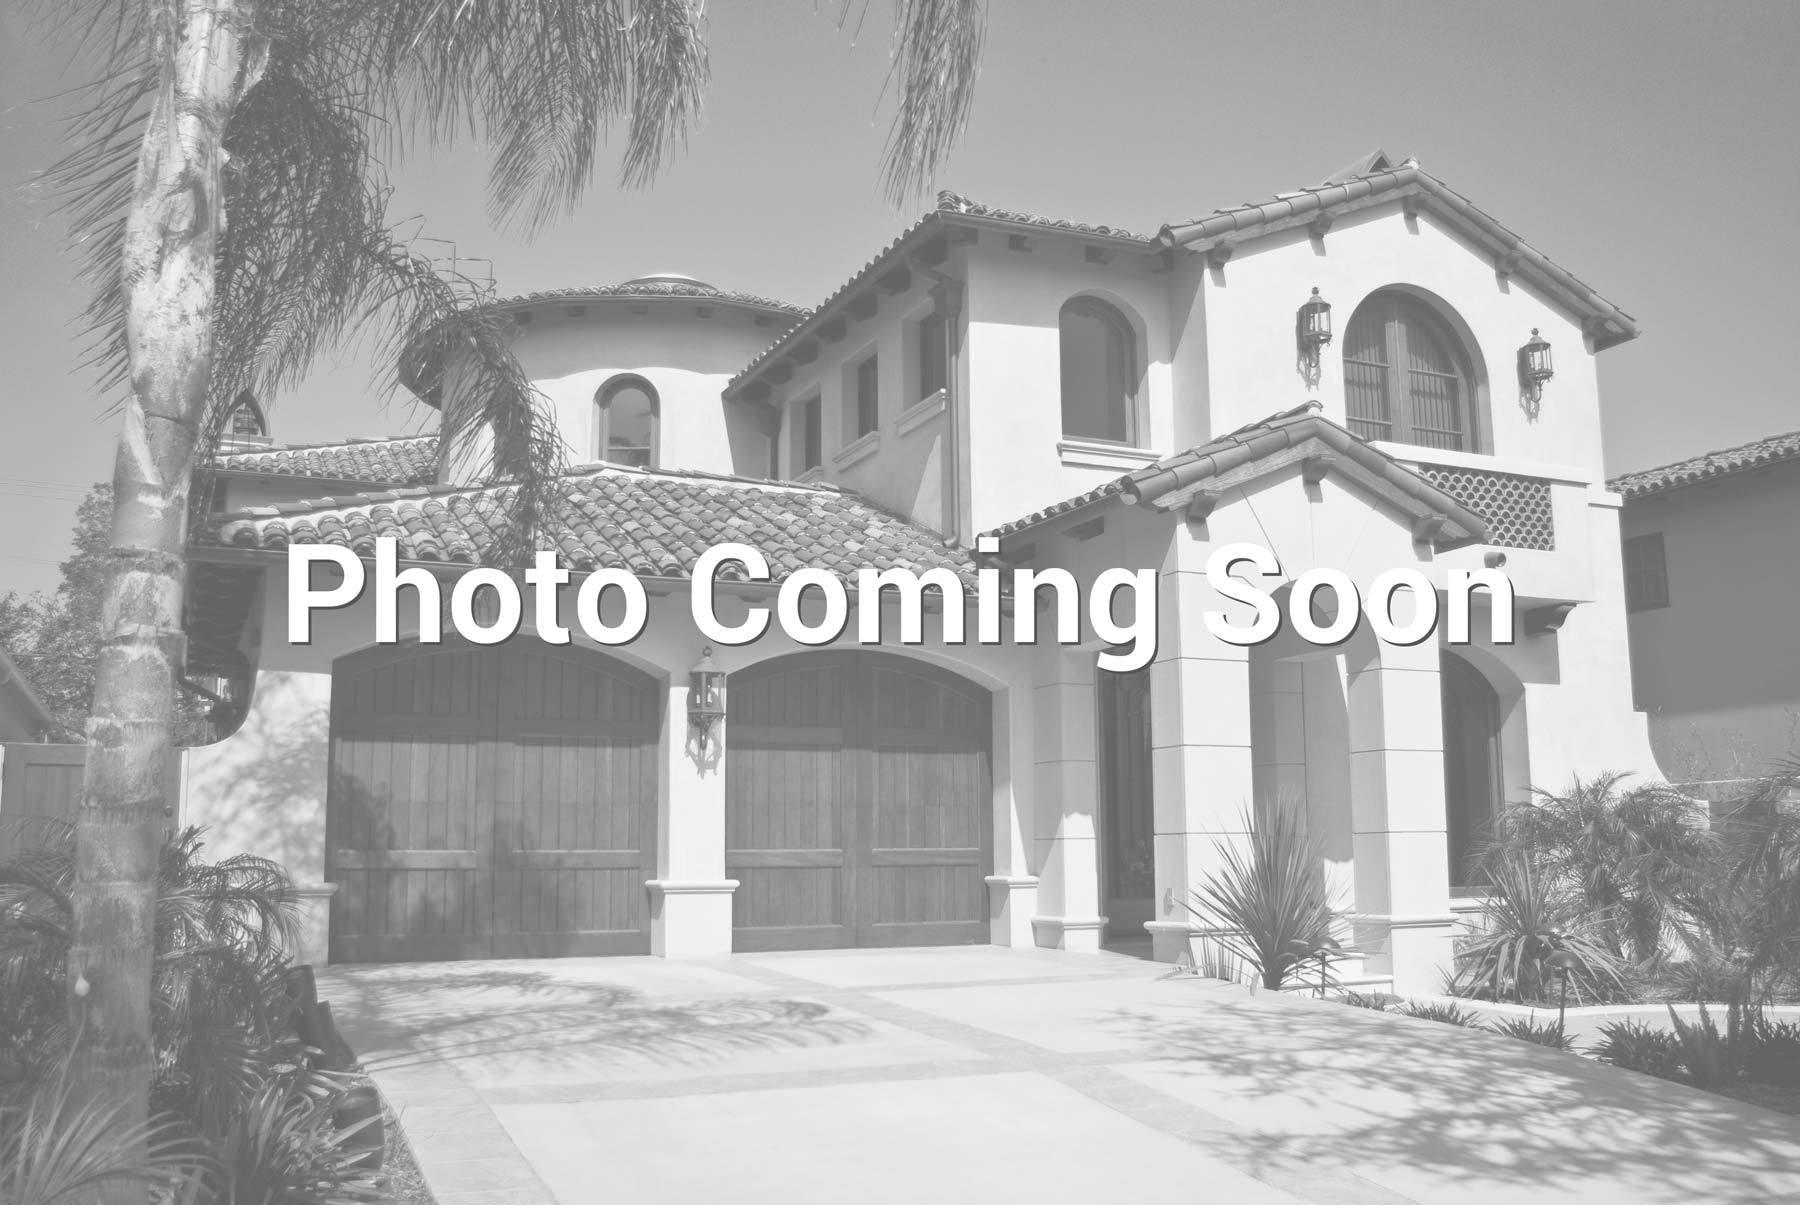 $710,000 - 4Br/2Ba - Home for Sale in Kierland Parcels 10a,10c & 11, Scottsdale